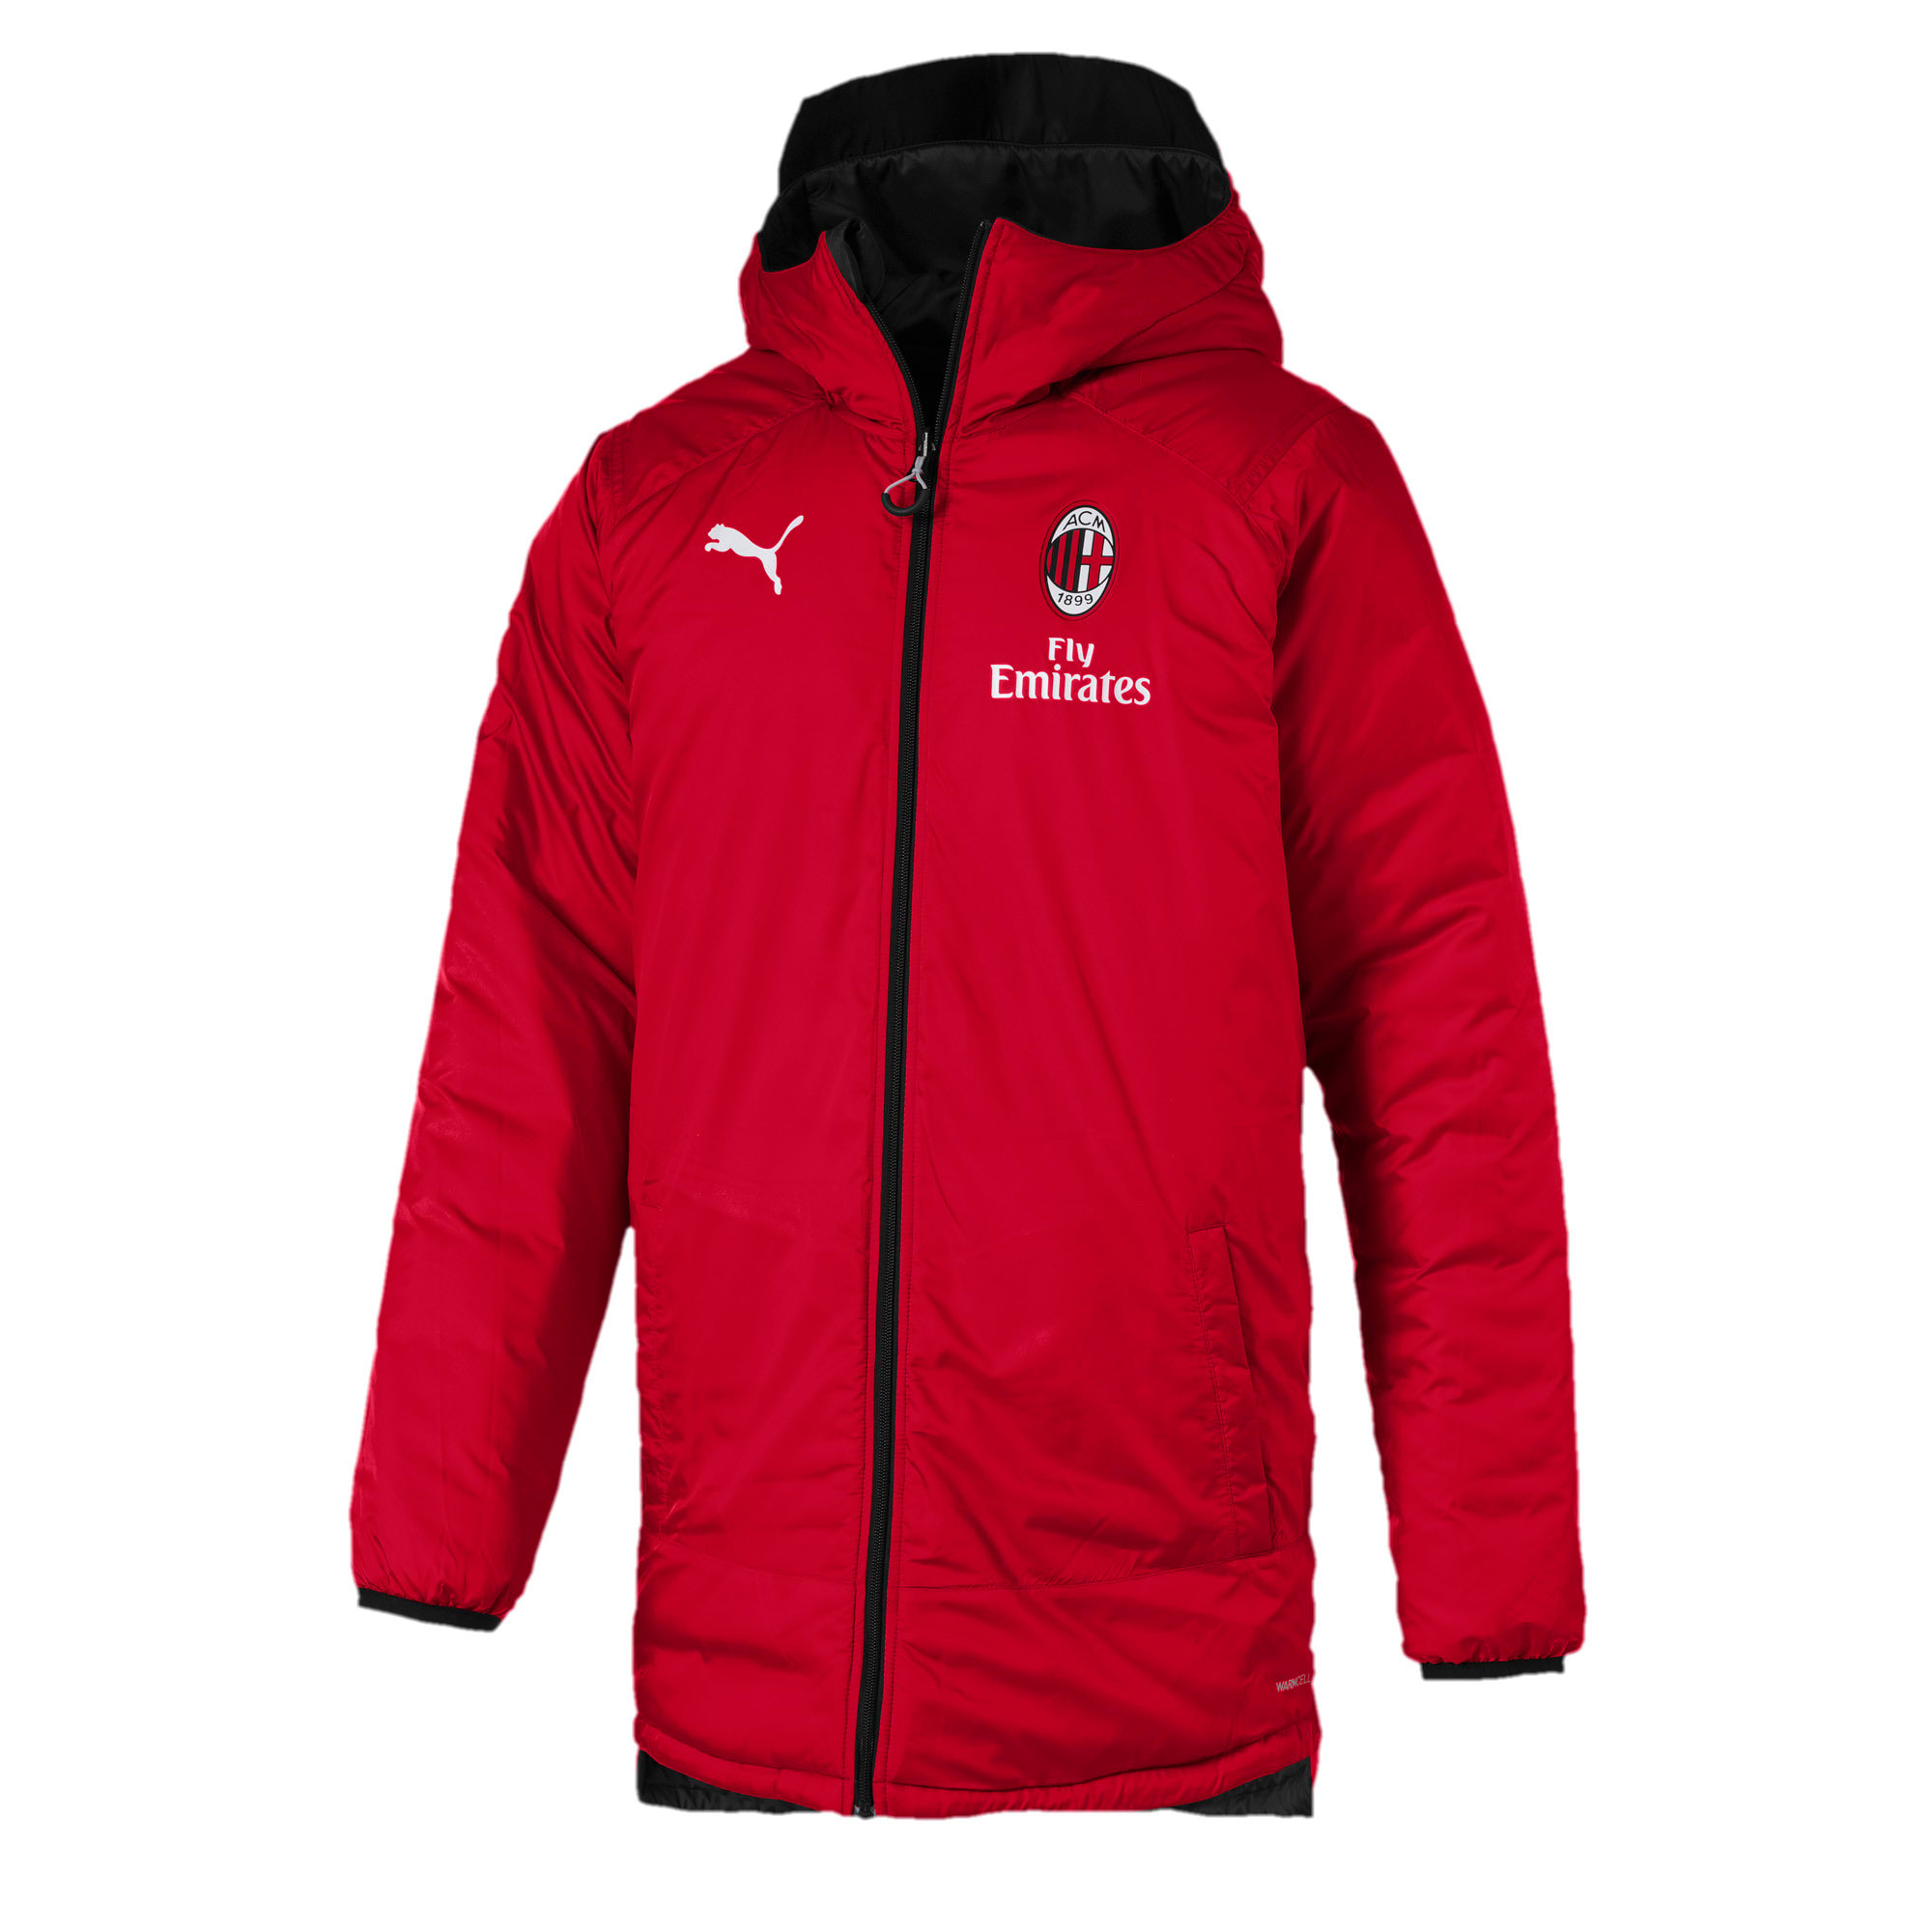 Thumbnail 6 of AC Milan Reversible Men's Bench Jacket, Puma Black-Tango Red, medium